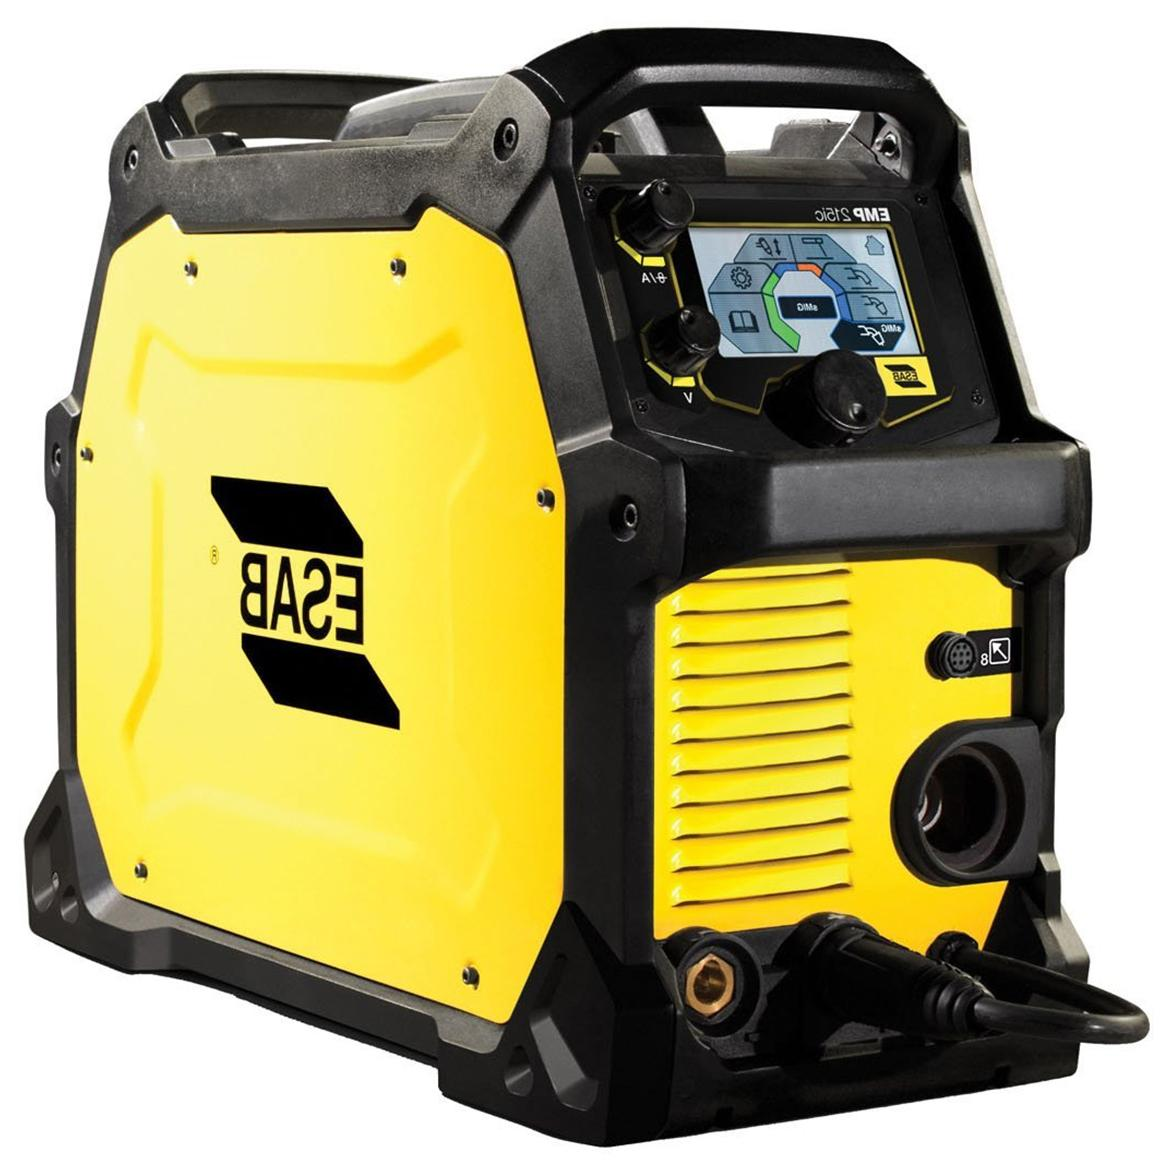 ESAB EMP215IC 120/230-Volt Dual Voltage Professional Grade Welder